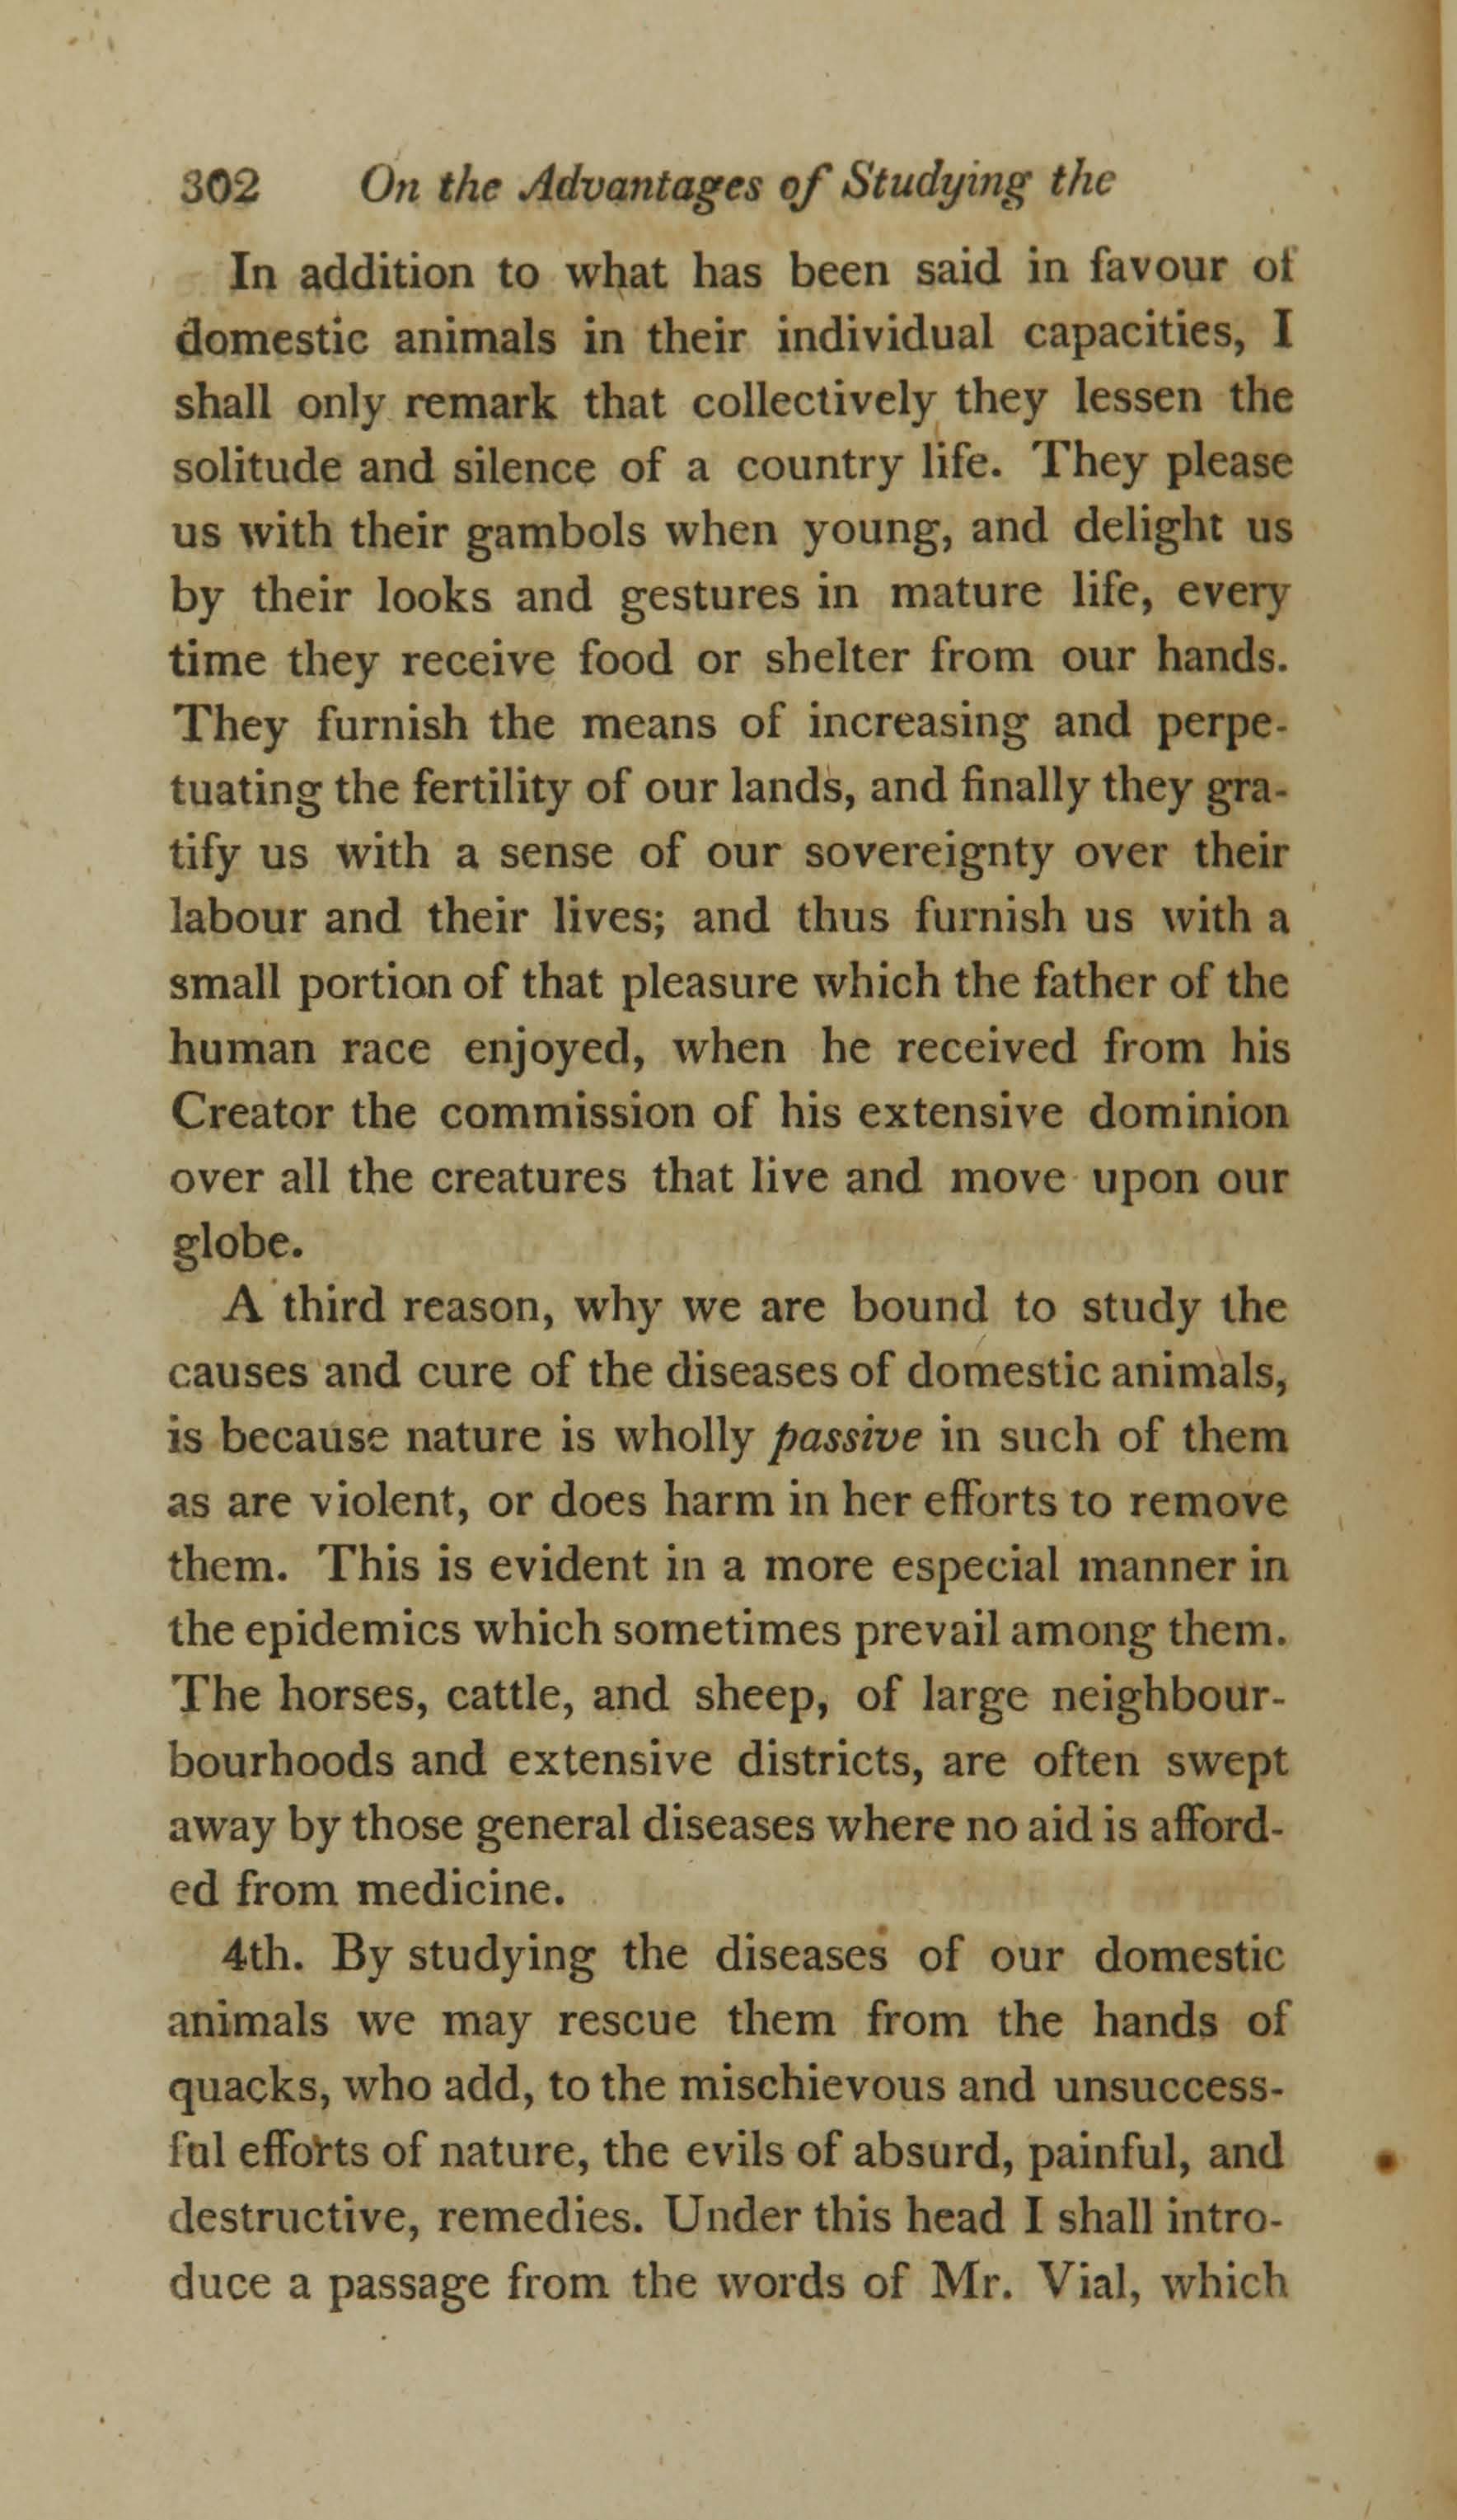 On the Duty and Advantages of Studying the Diseases of Domestic Animals (page 8)